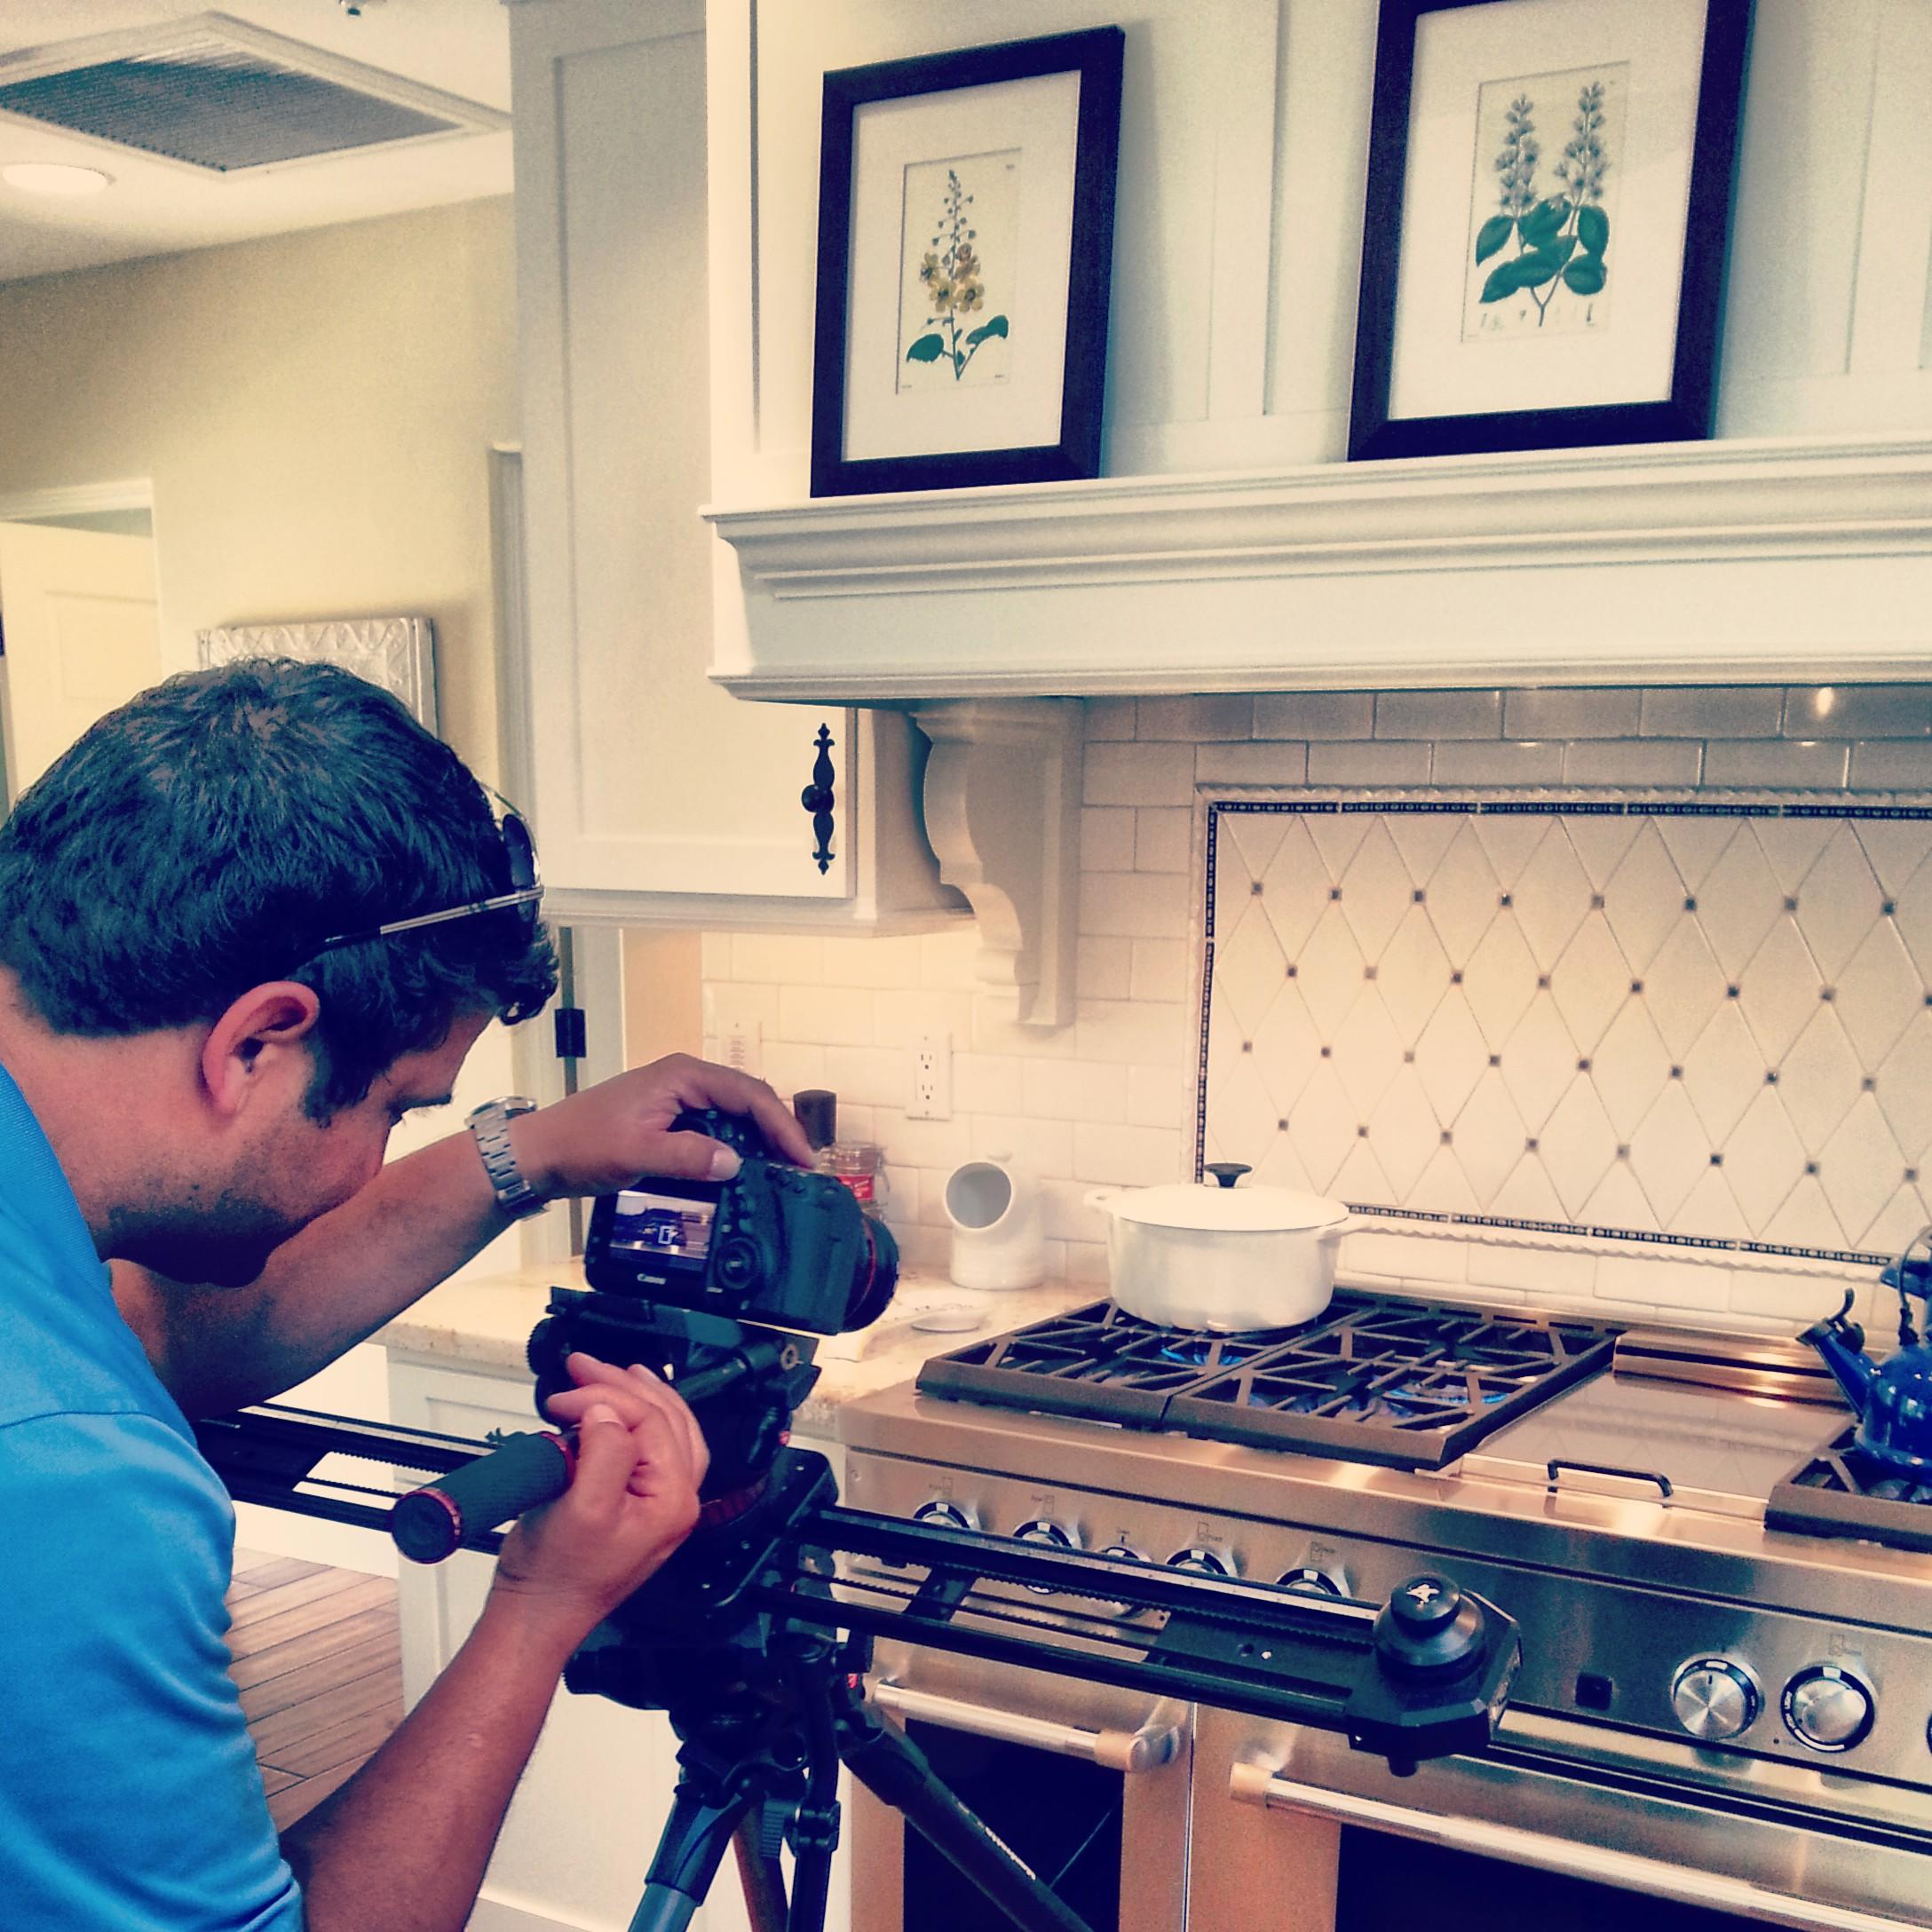 Real Estate Video Production Company Phoenix - My Title Guy